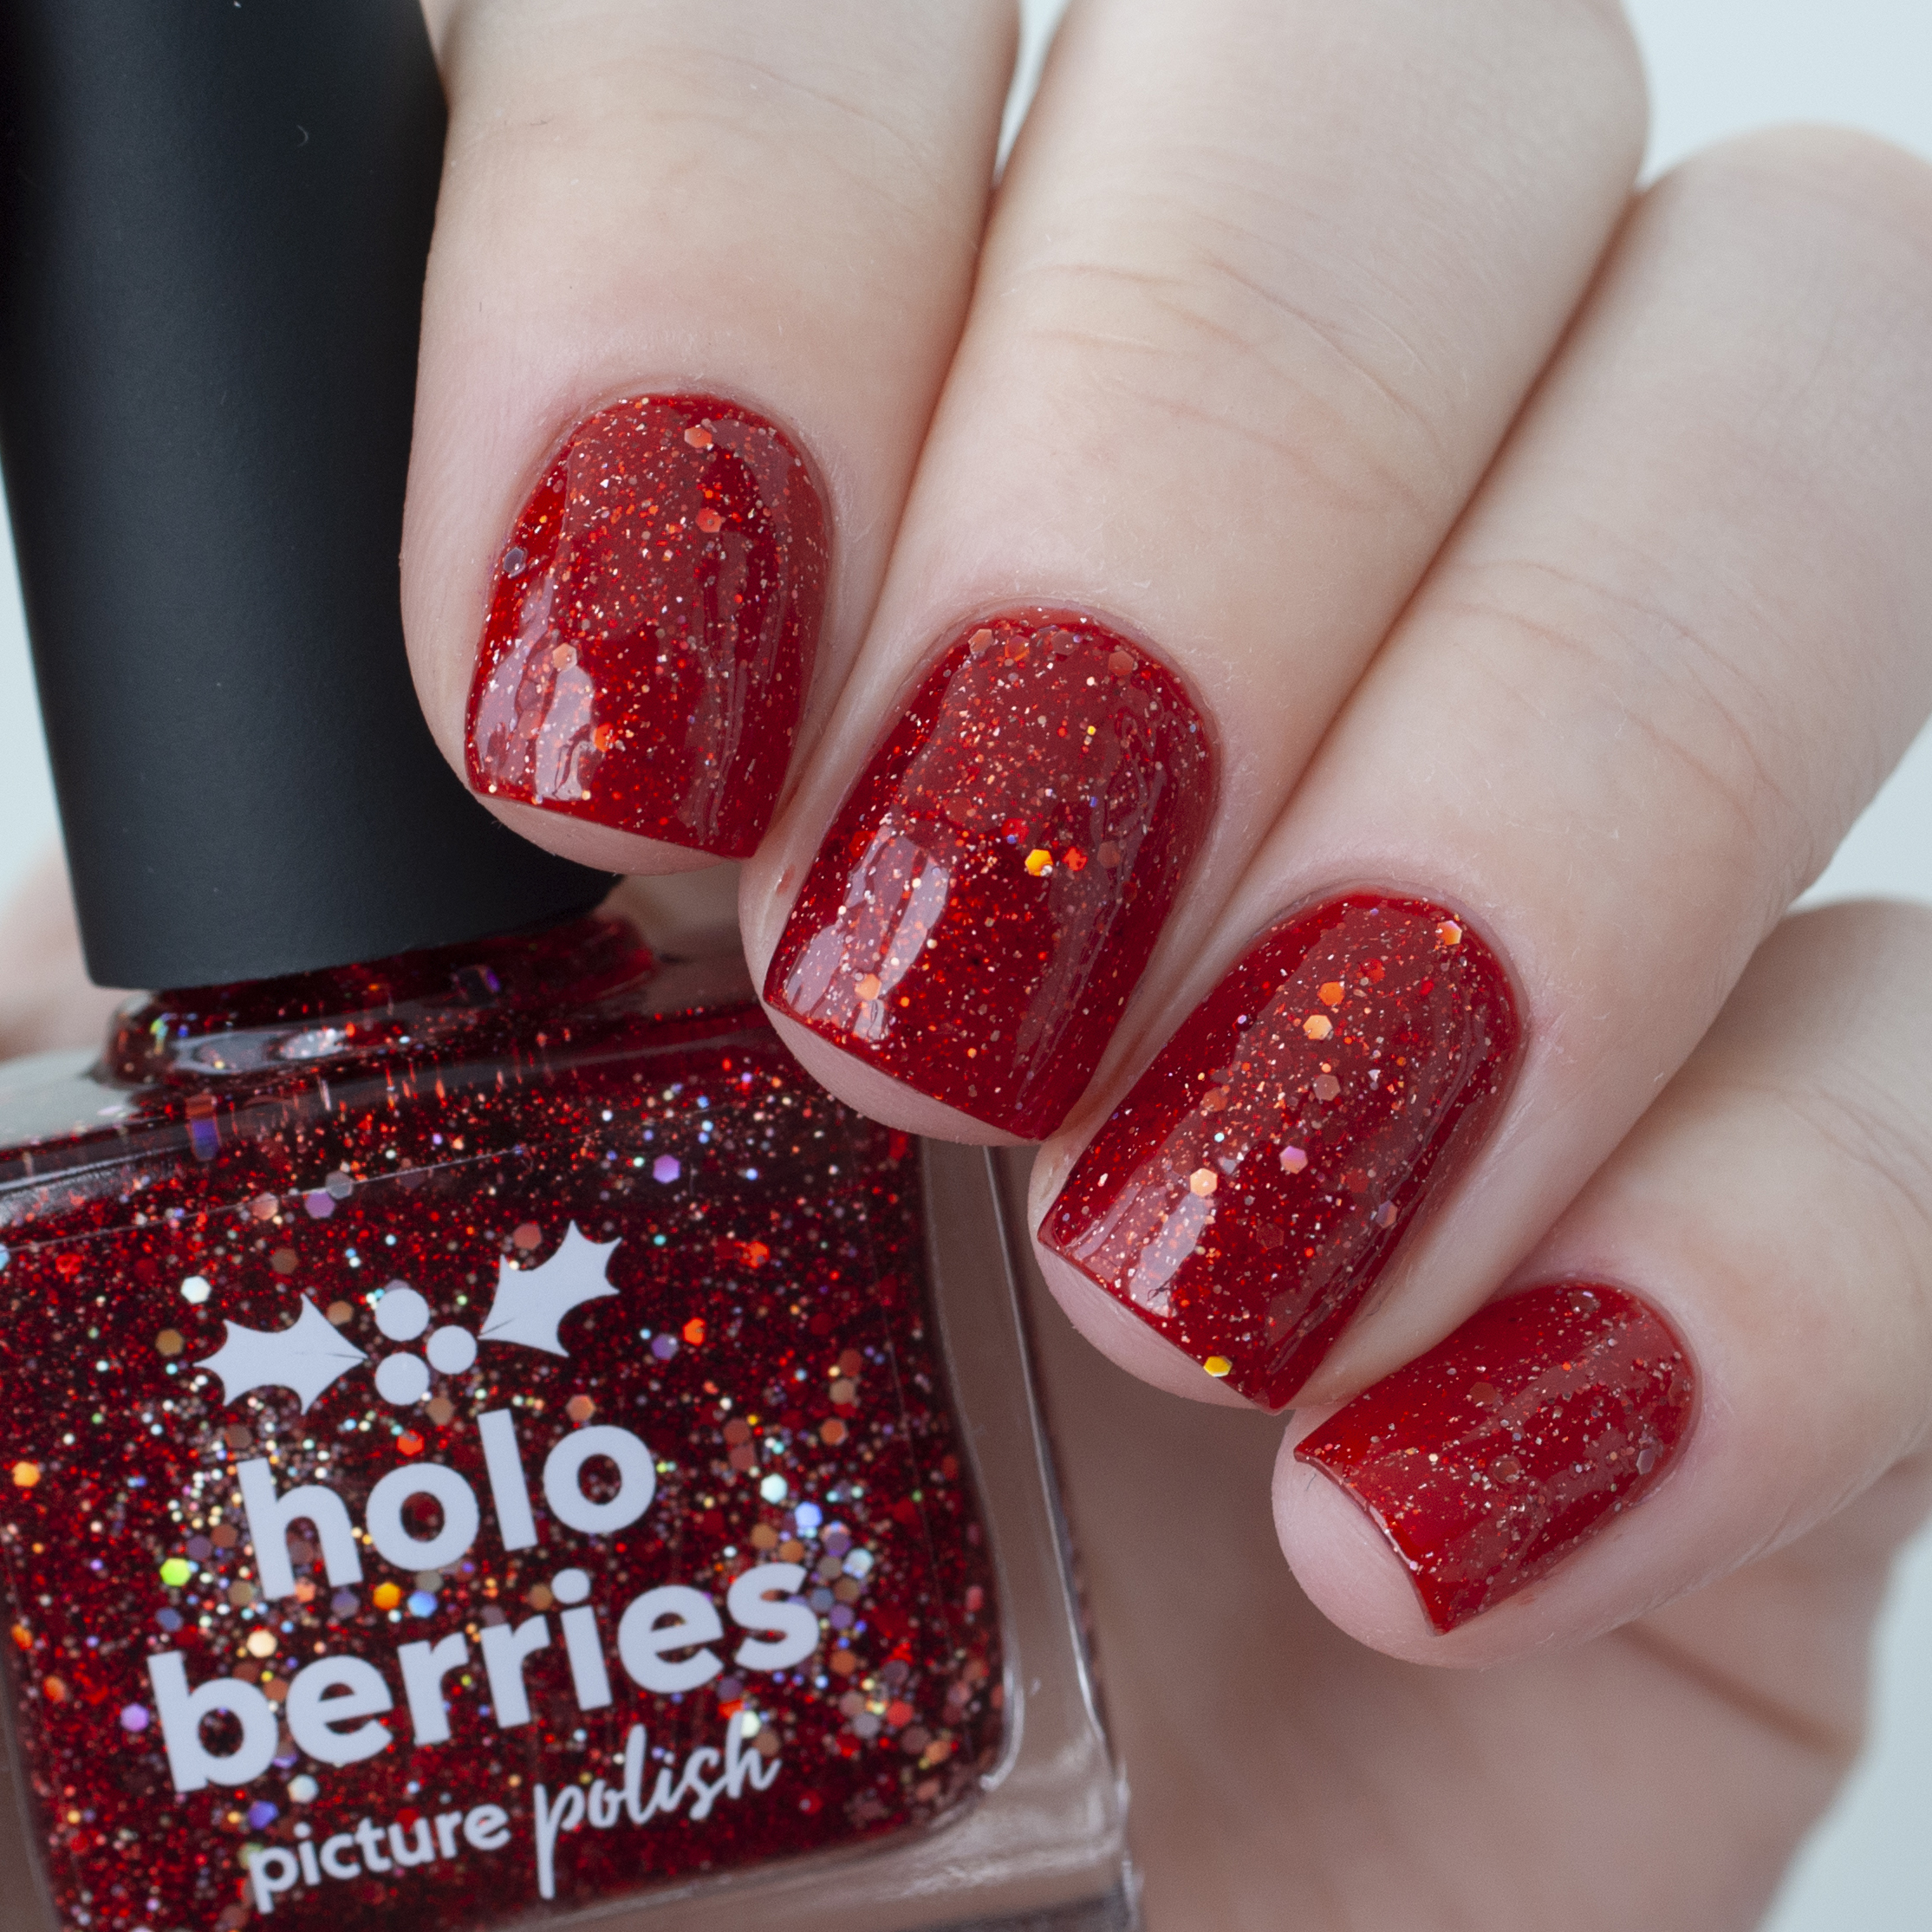 Holo Berries Nail Polish